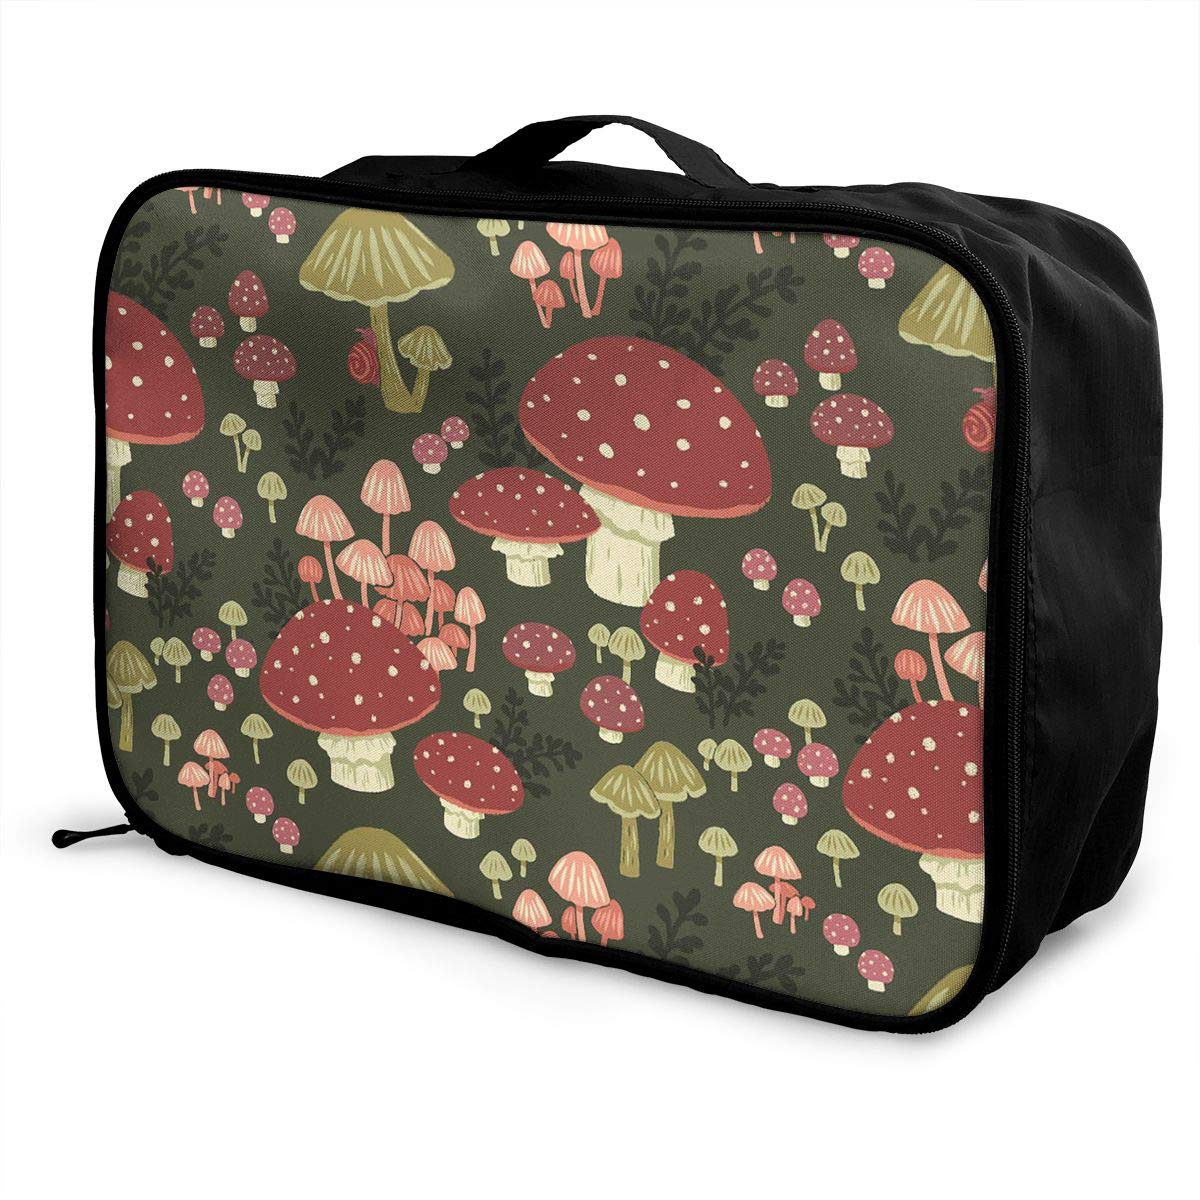 Travel Luggage Duffle Bag Lightweight Portable Handbag Mushroom Pattern Large Capacity Waterproof Foldable Storage Tote